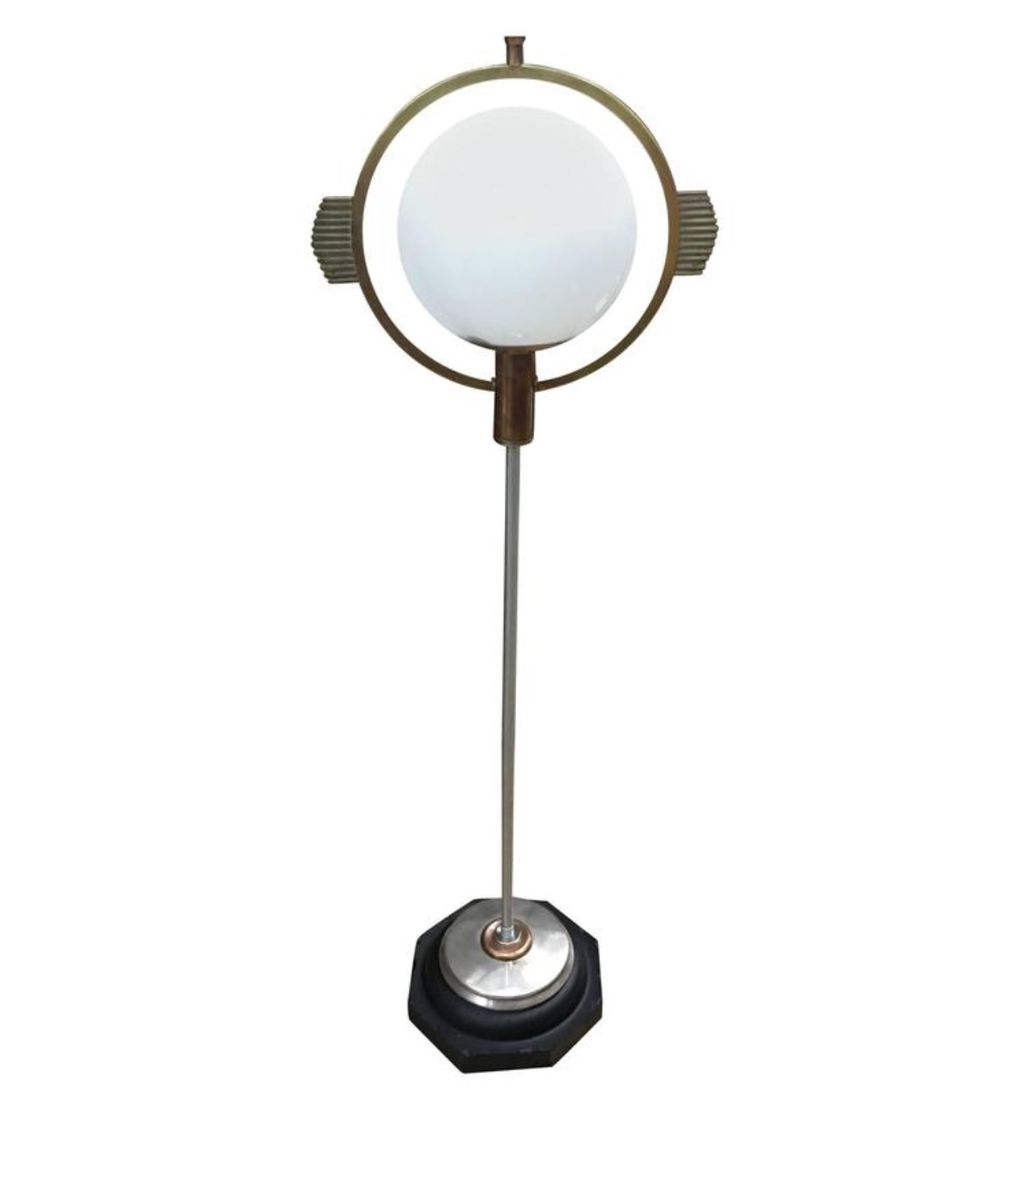 Art deco floor lamp 1930s for sale at pamono for 1930 floor lamps